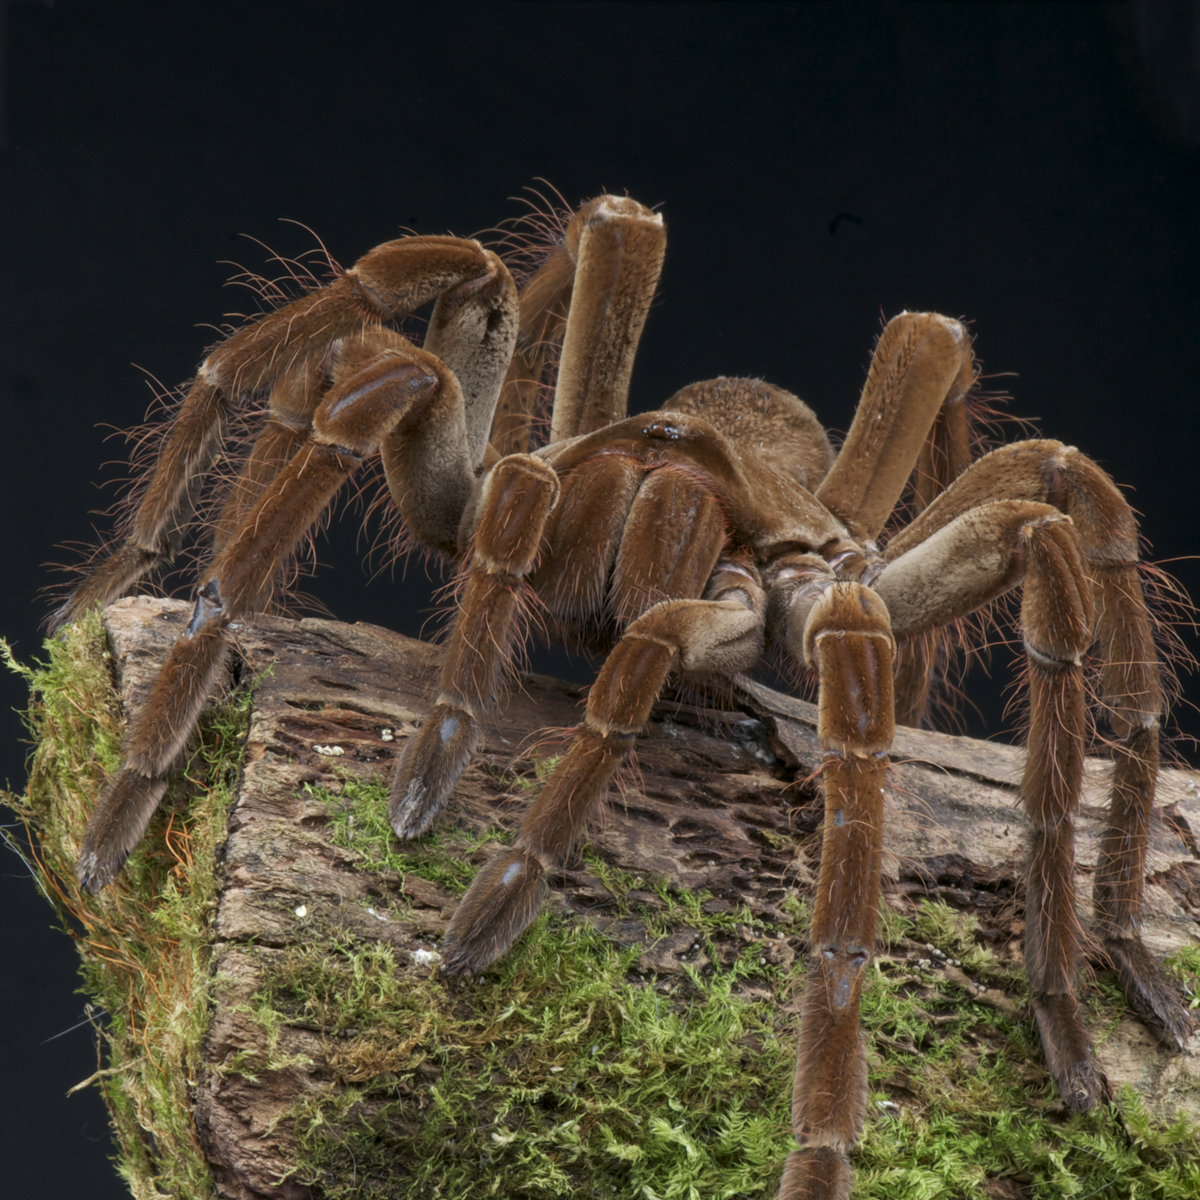 & Goliath Bird-Eating Spider (Theraphosa Blondi) | about animals